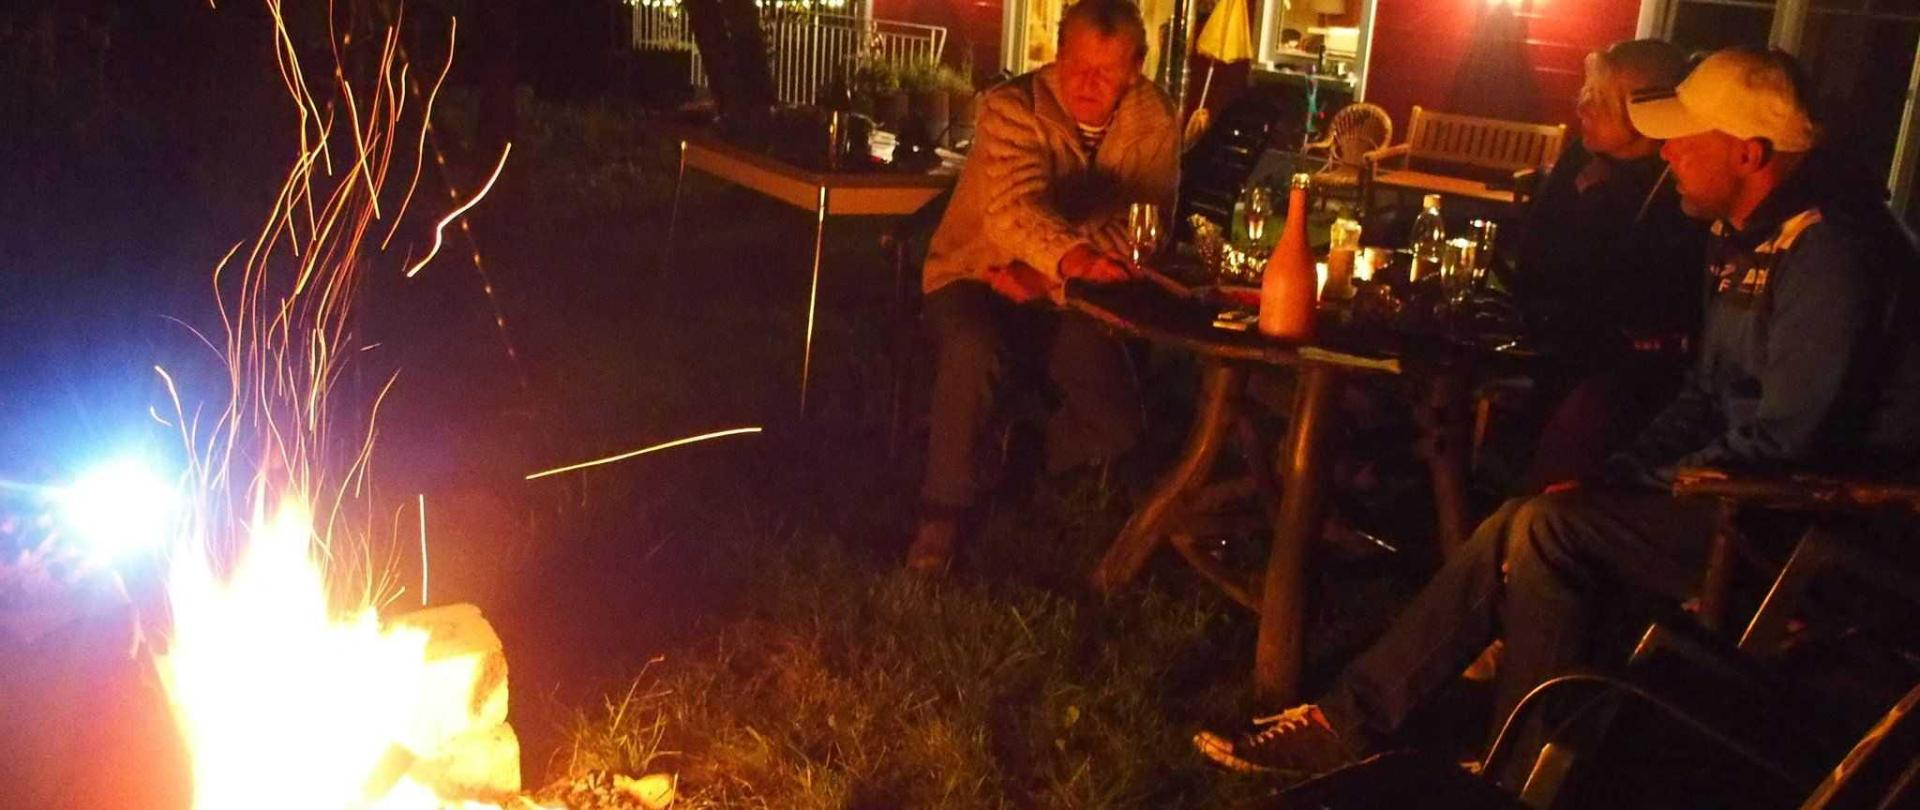 evening at the fire in the garden